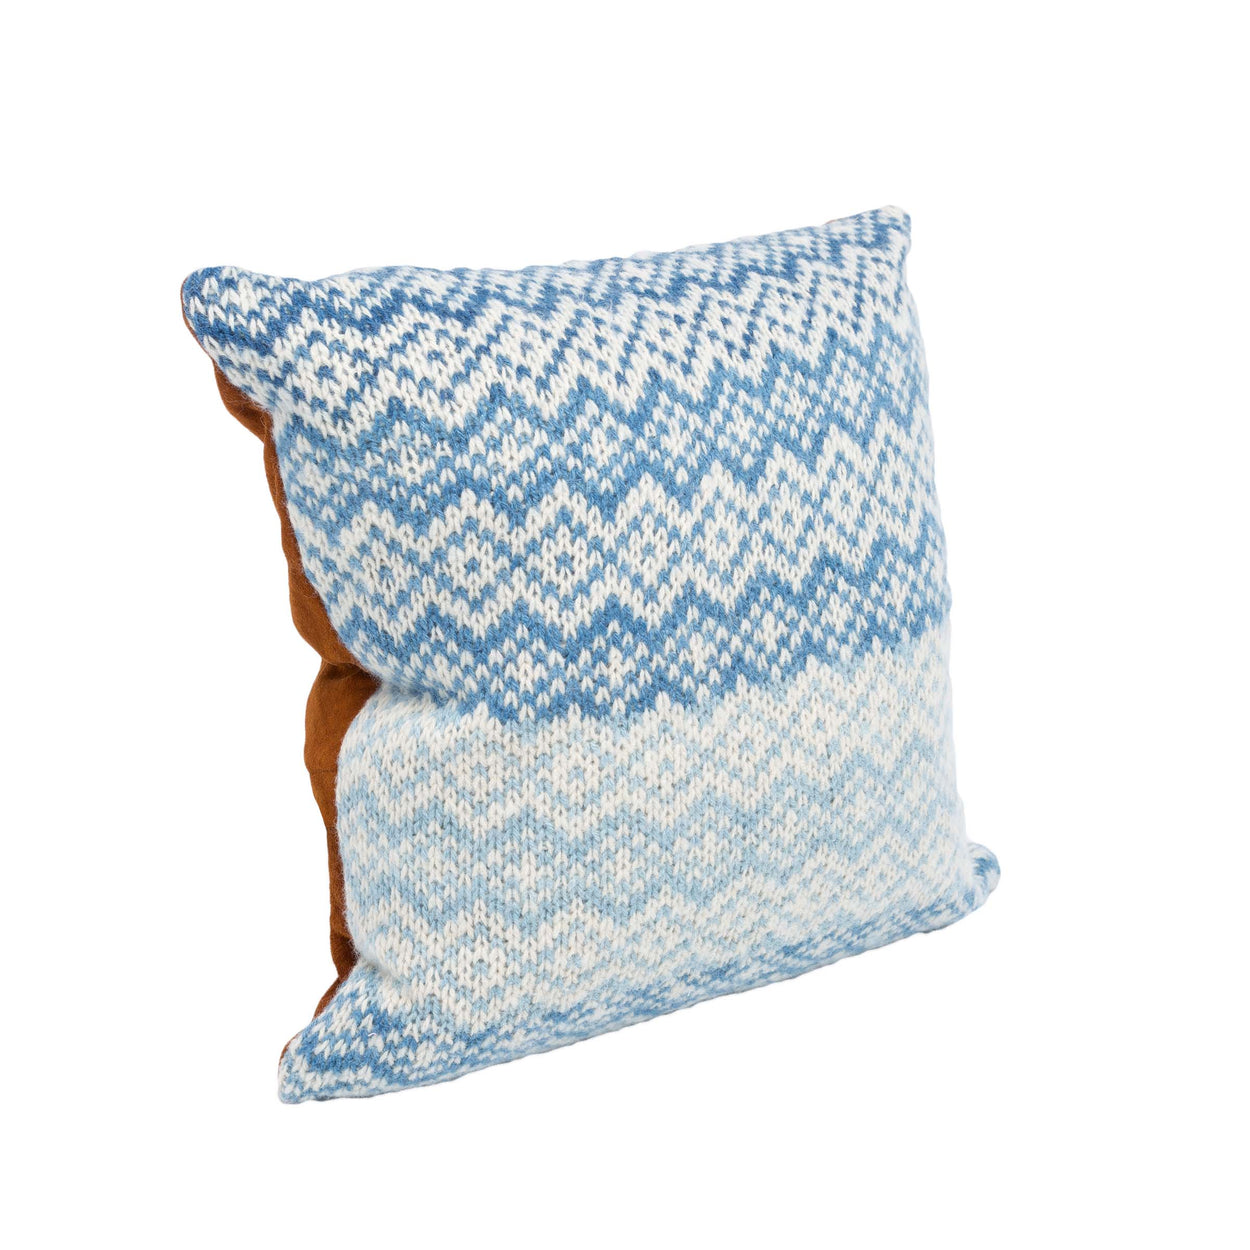 Alpaca Lodge Pillow